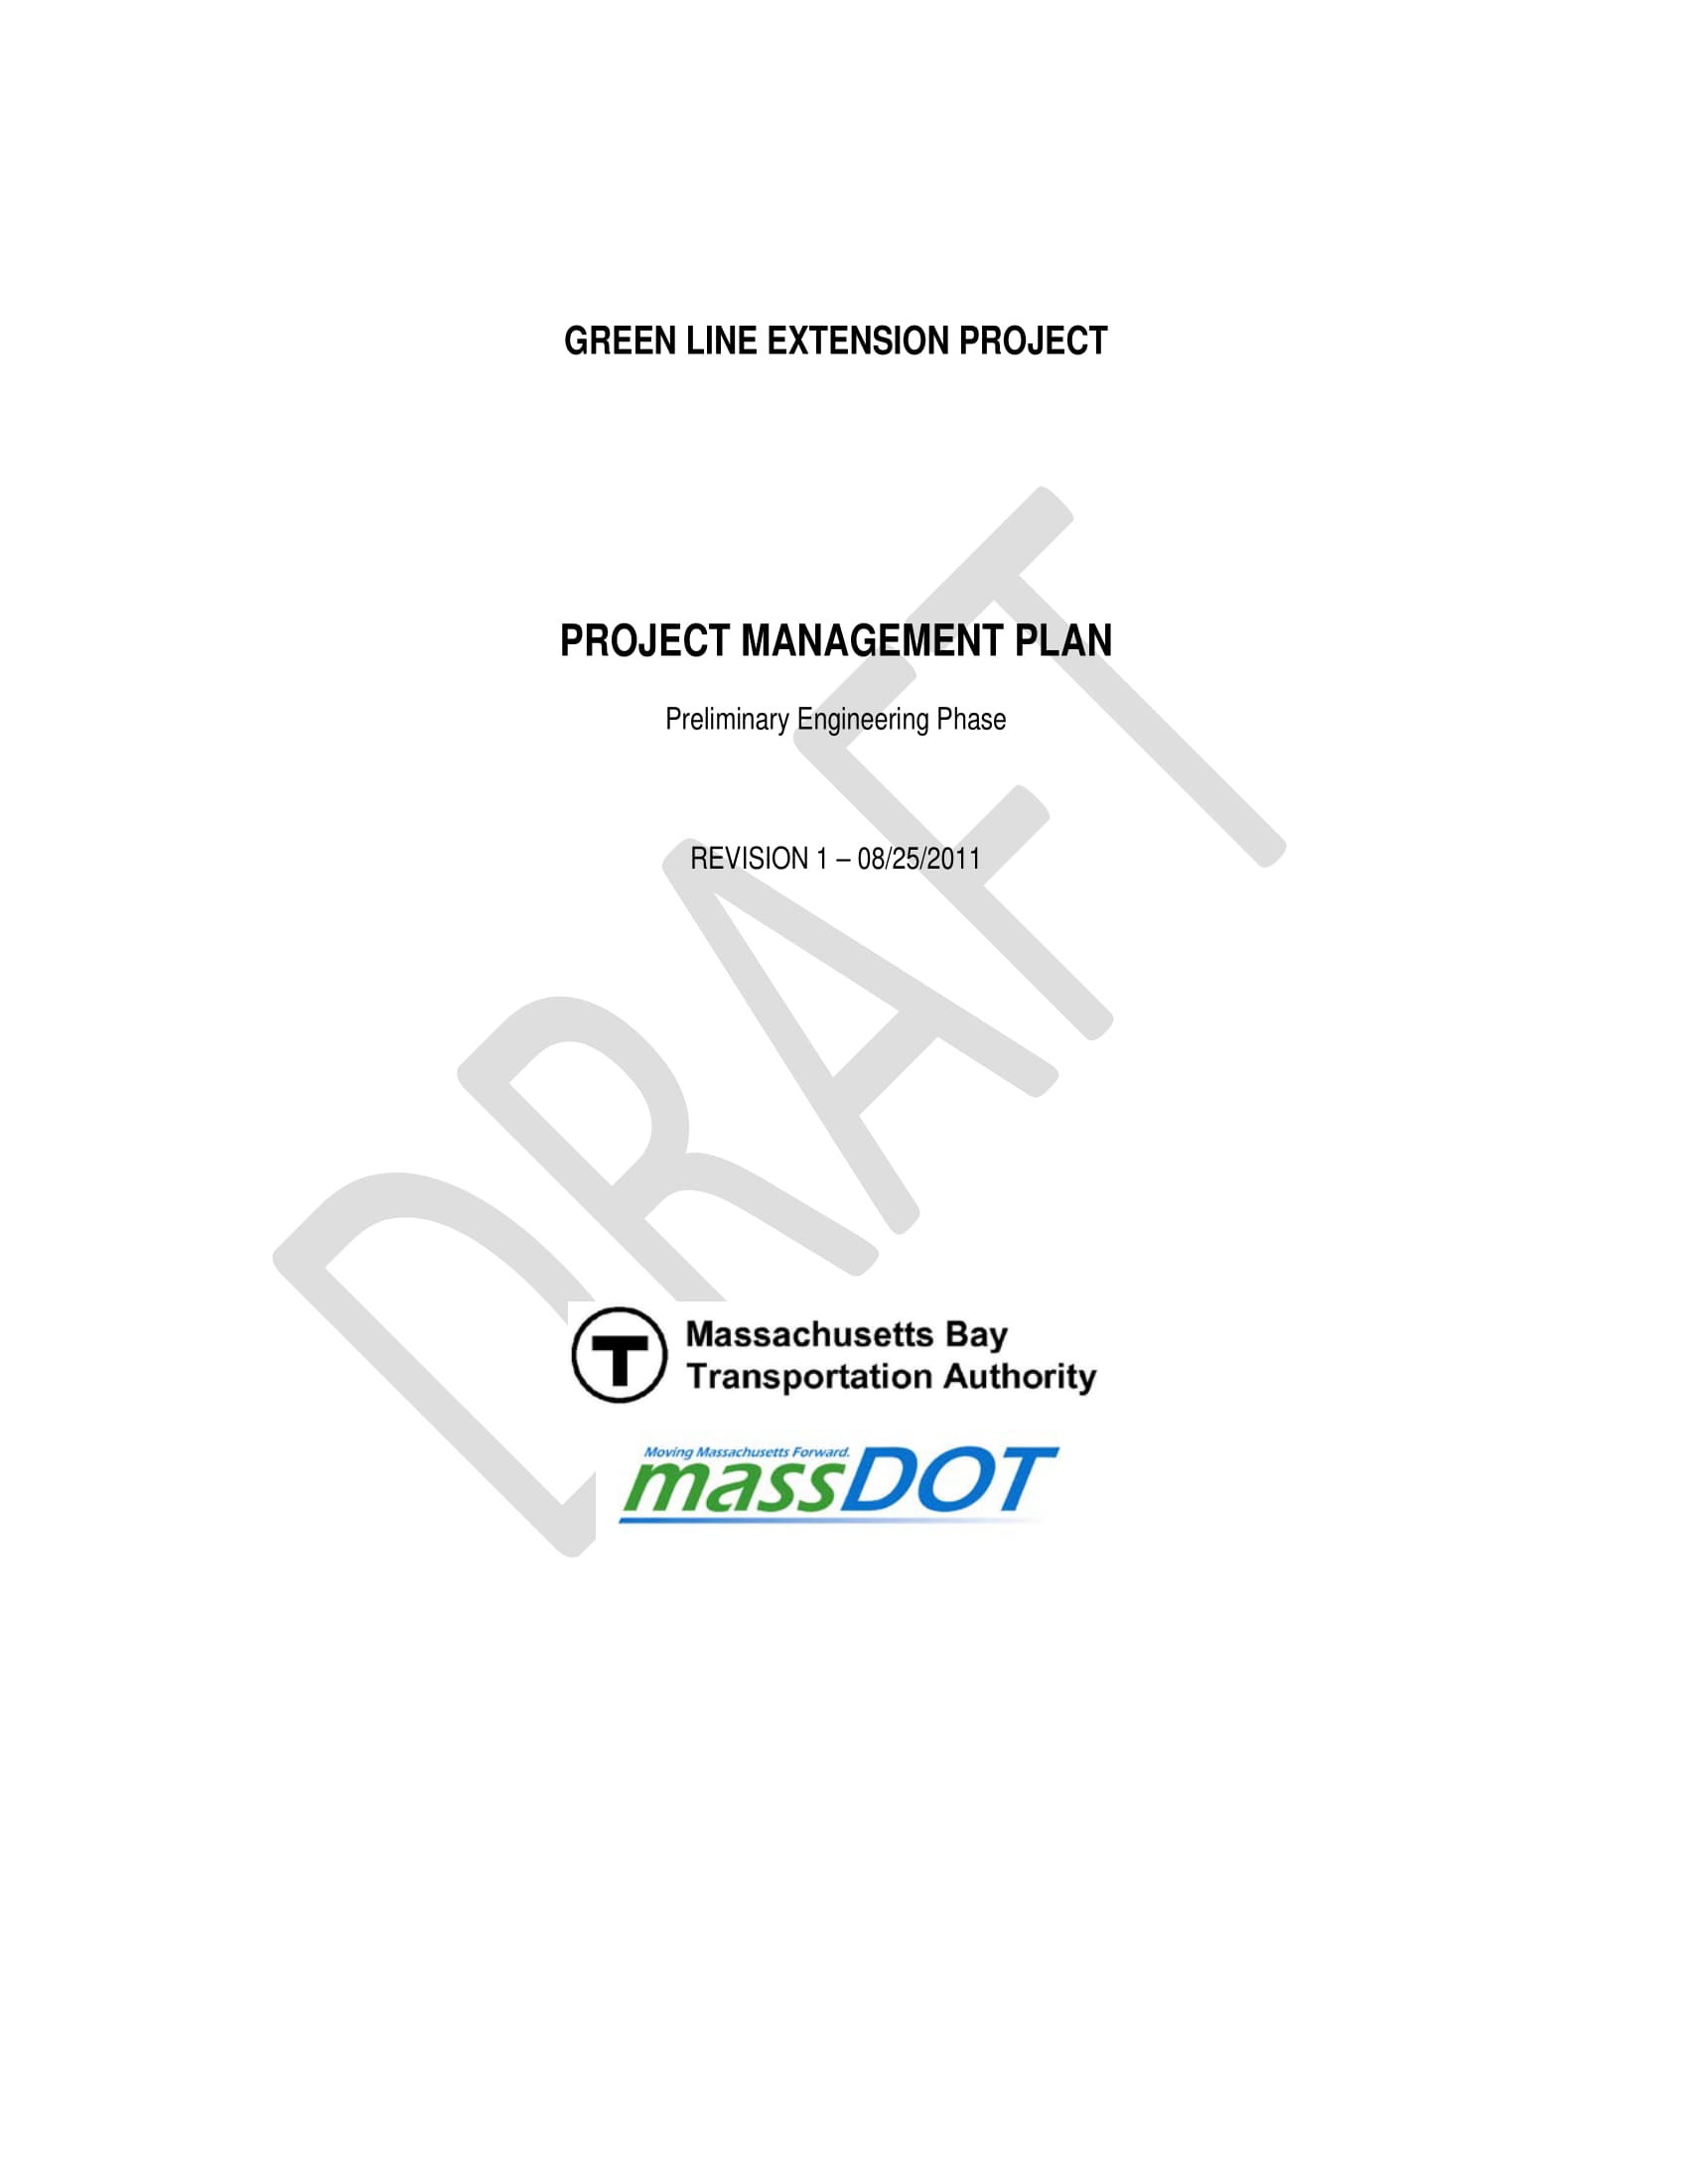 project management plan draft template example 001